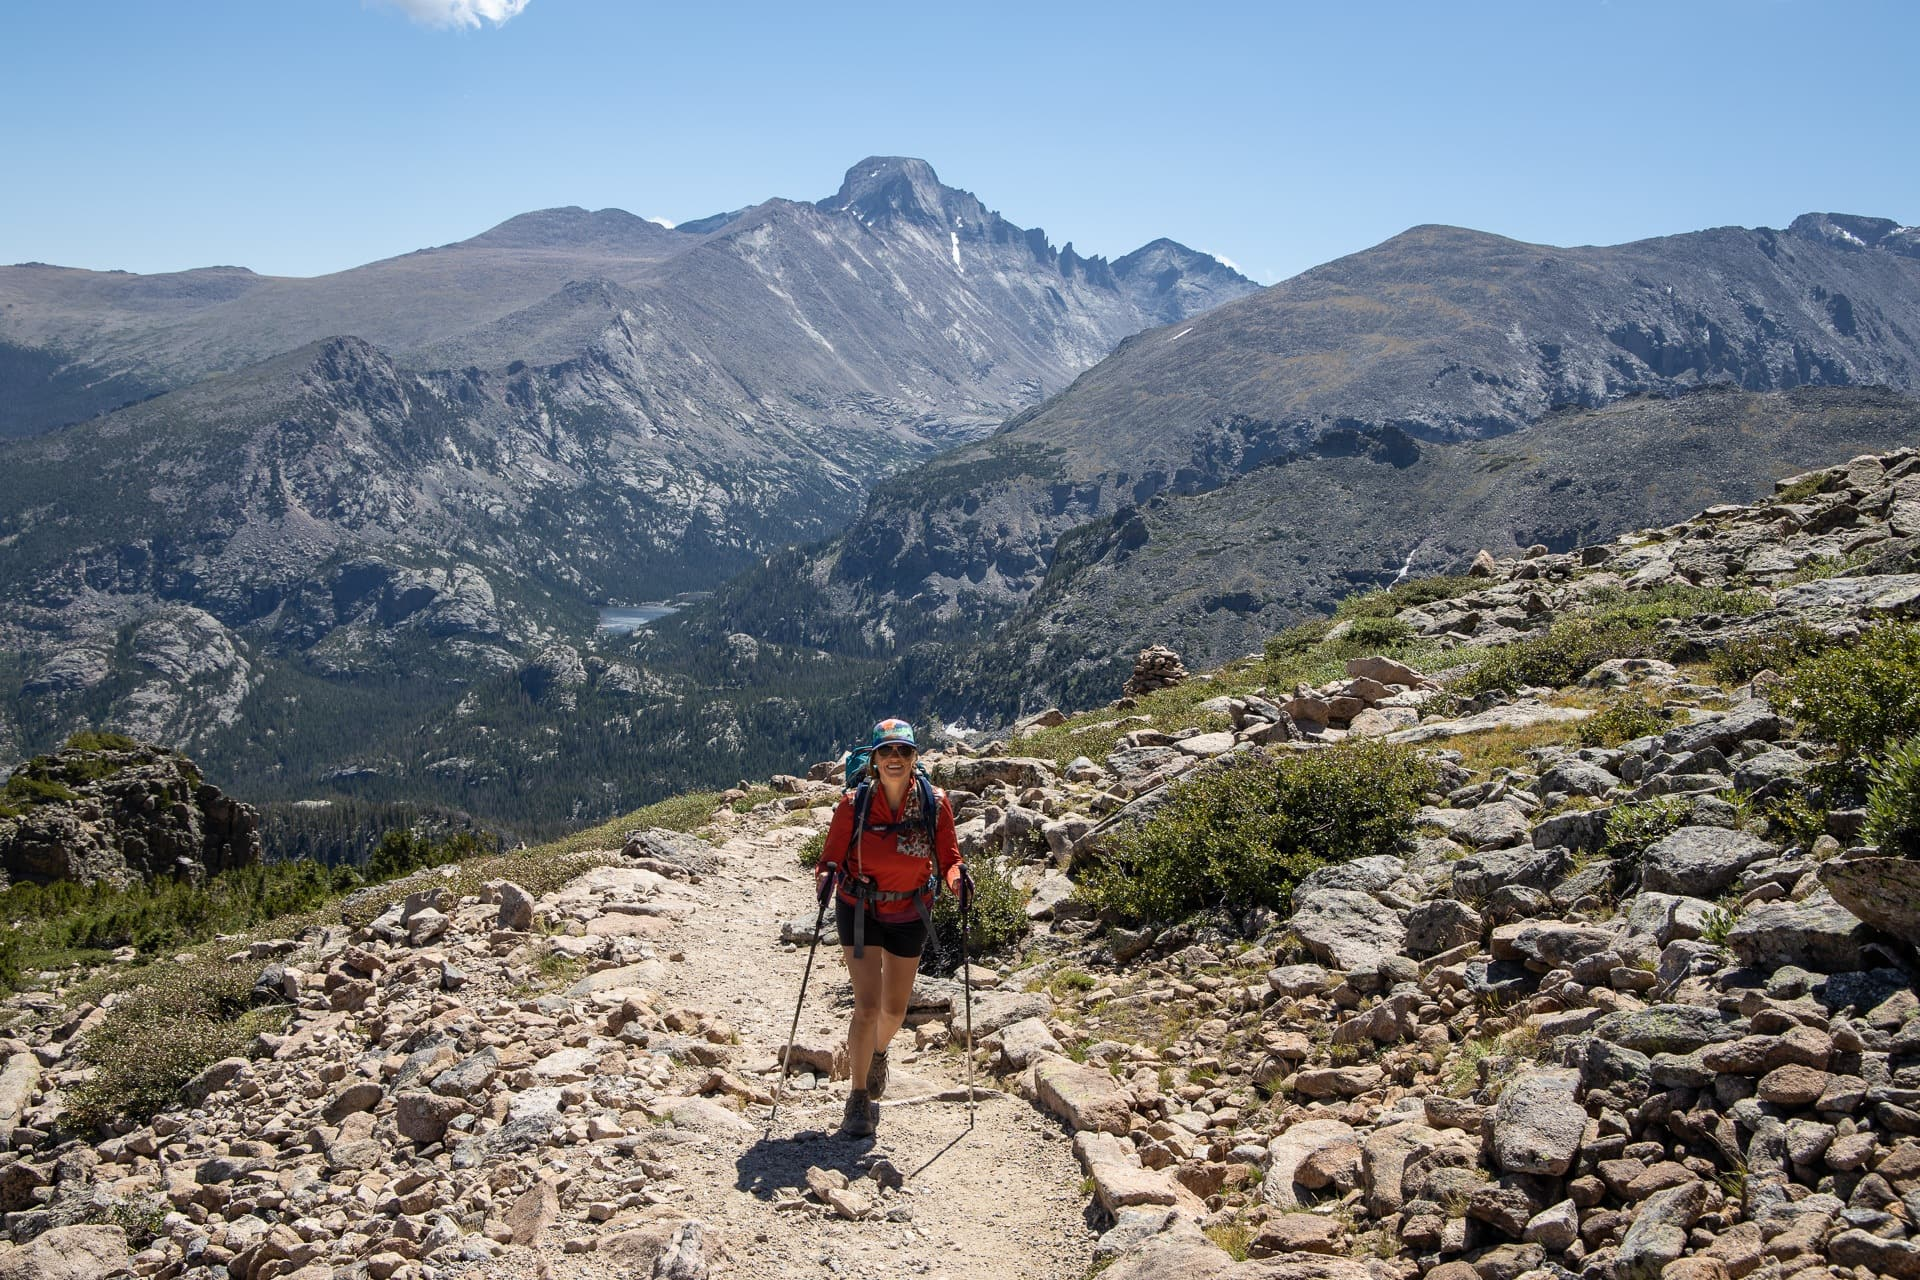 Flattop Mountain Trail // Sky Pond Trail // Get our guide to the best day hikes in Rocky Mountain National Park including distances, trail descriptions, what to be prepared for, and more.